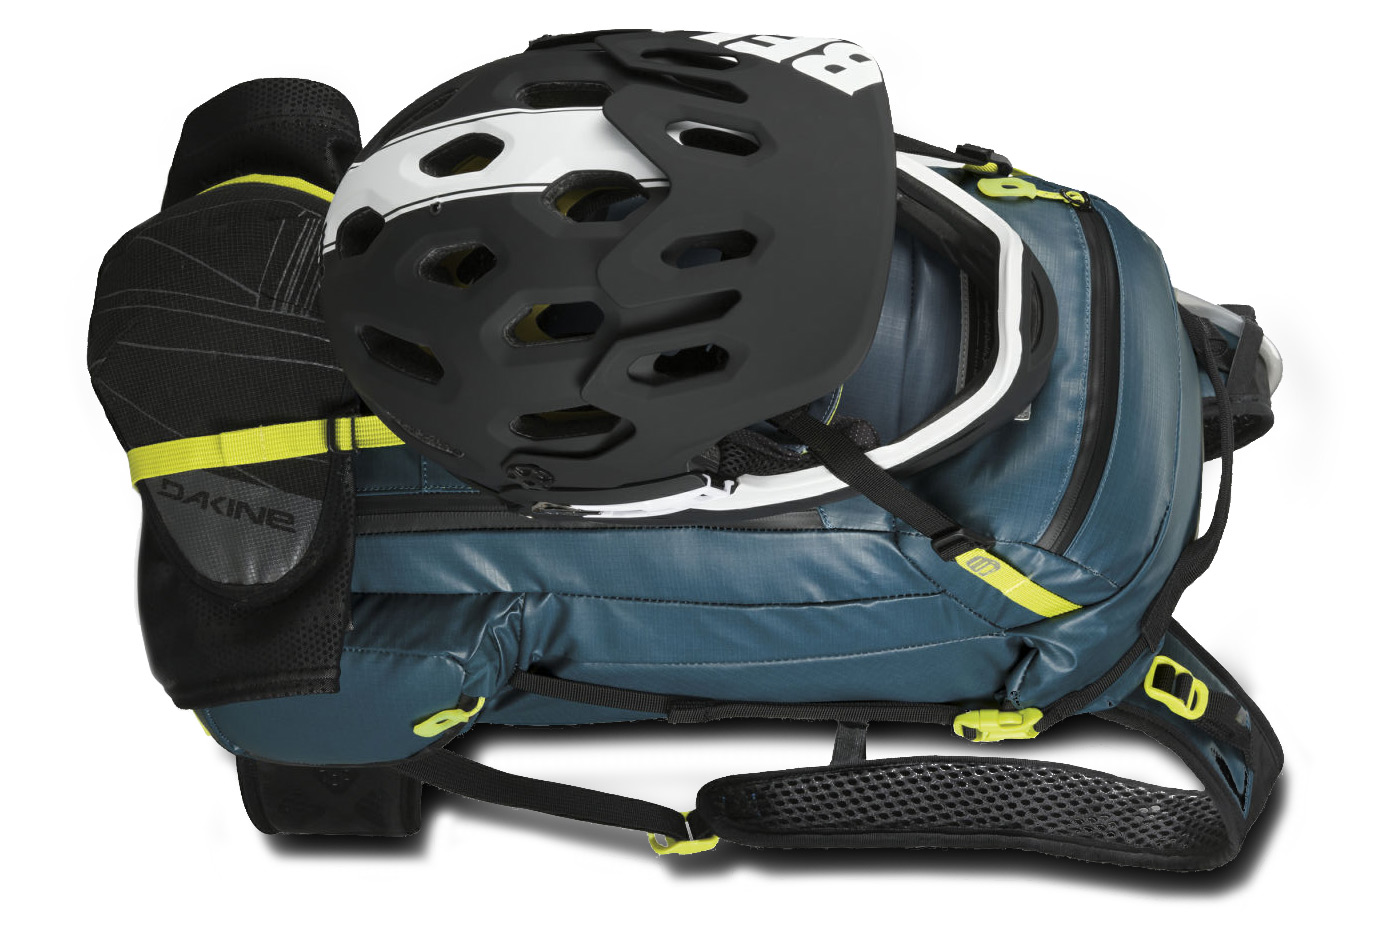 dakine is ready for spring with 3 new mtb packs new pads. Black Bedroom Furniture Sets. Home Design Ideas